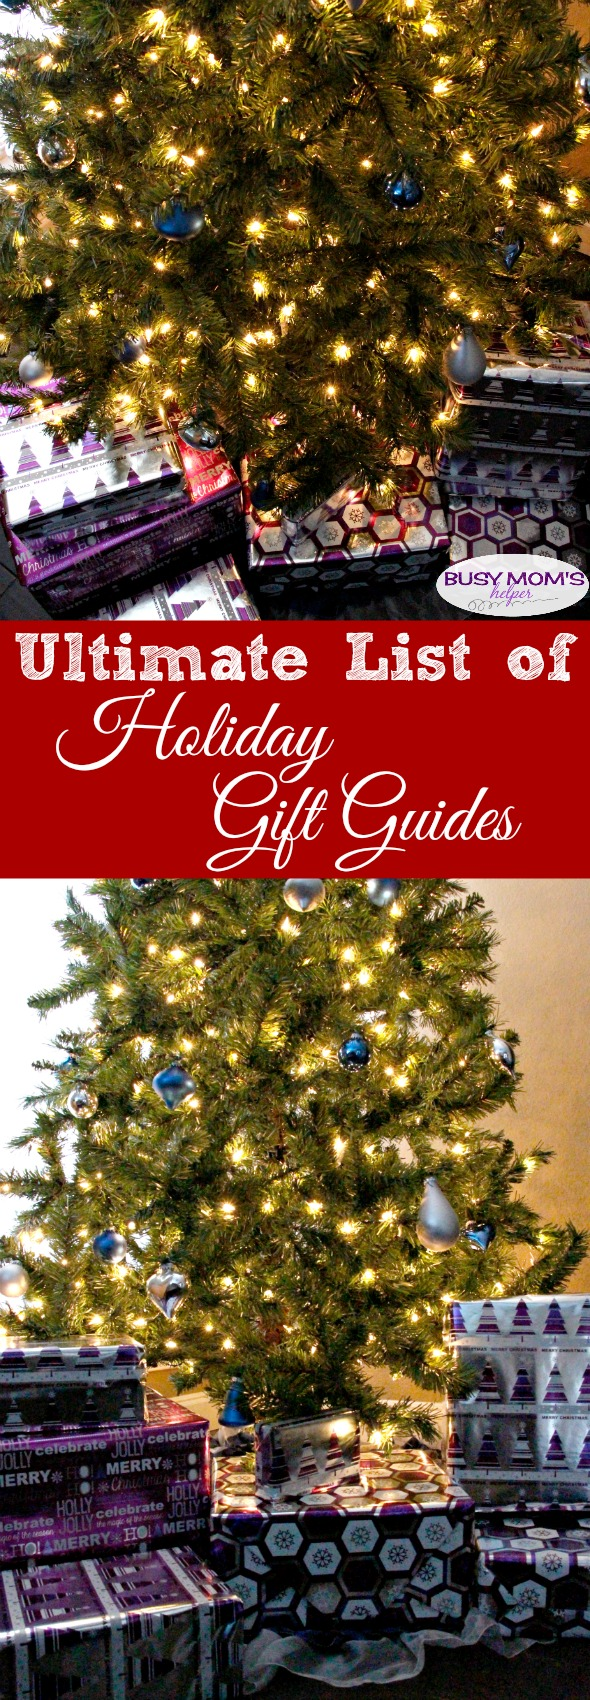 Ultimate List of Holiday Gift Guides - a bit of something for everyone! #holidaygiftguide #giftguide #christmasgift #gifts #giftideas #giftsforkids #giftsforteens #giftsforadults #giftsforlearners #giftsforfamily